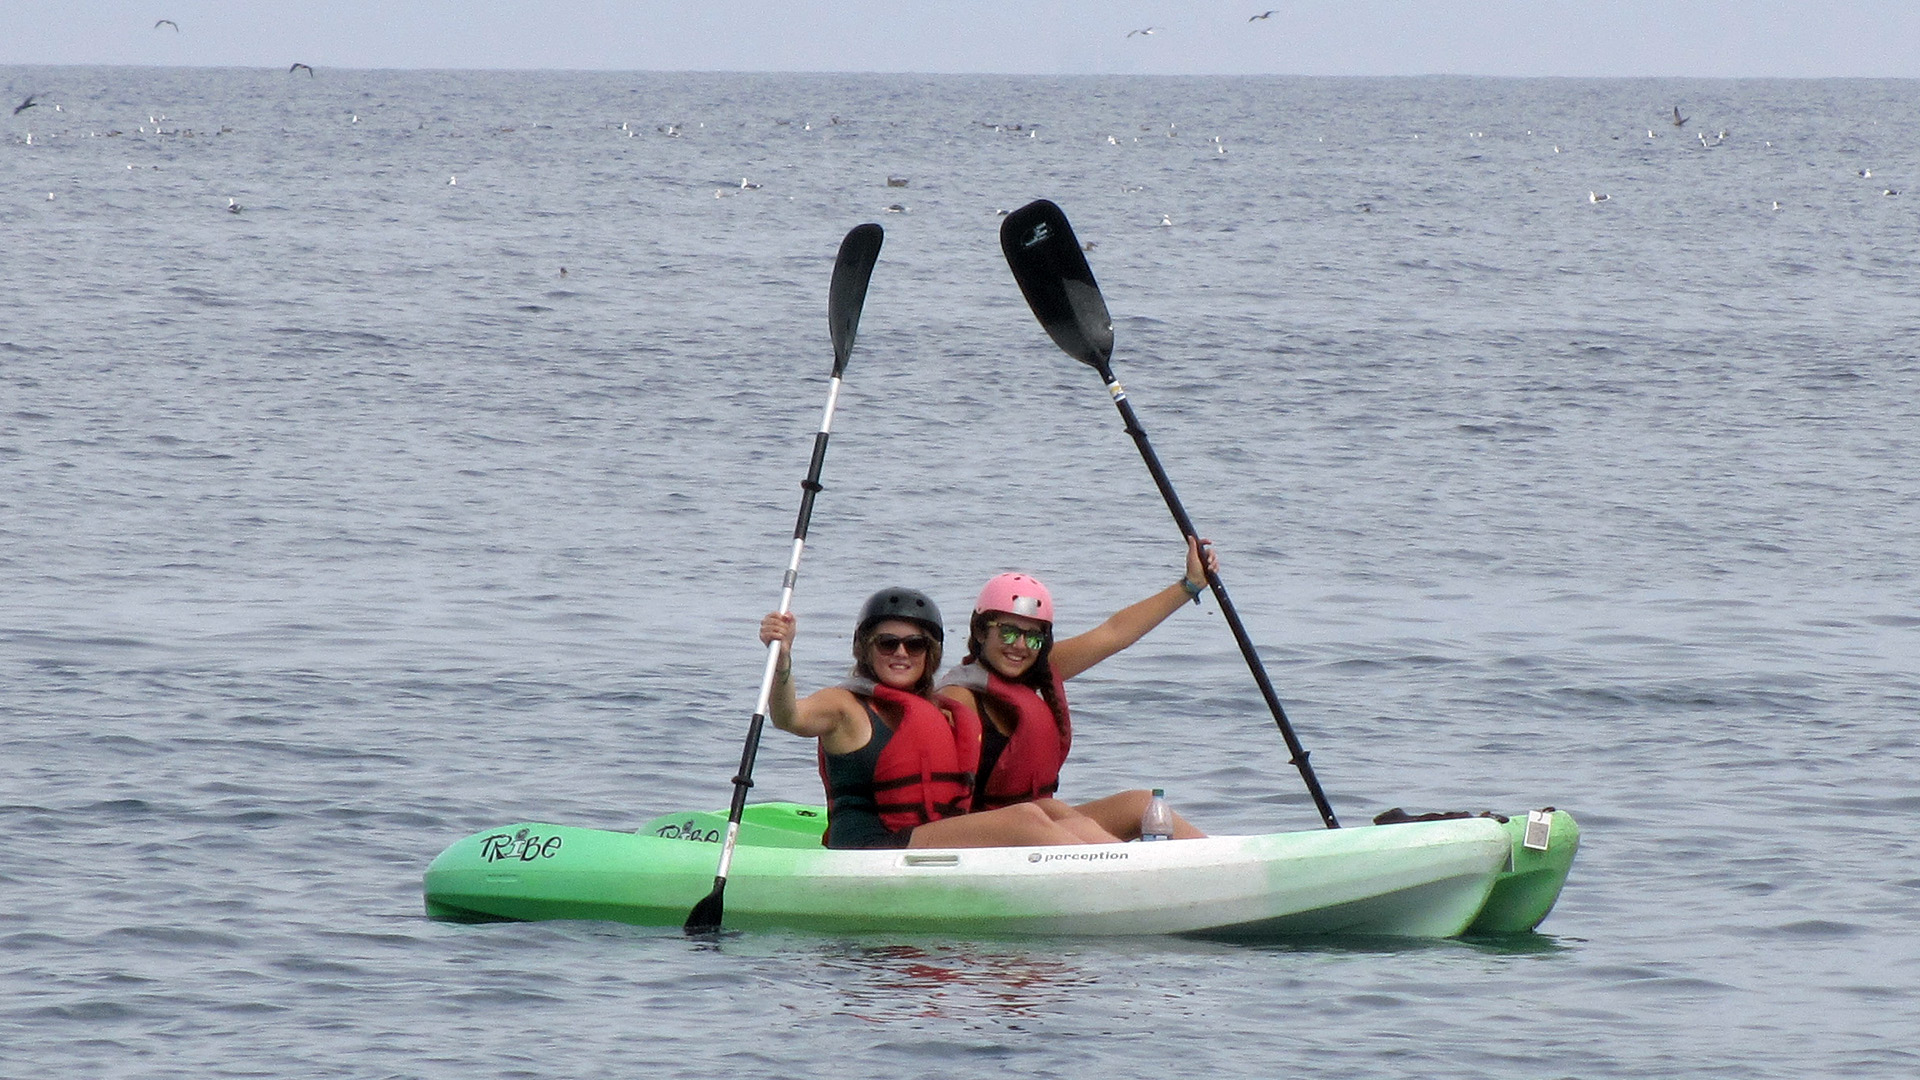 Stefanie and Zeinab kayaking in the ocean